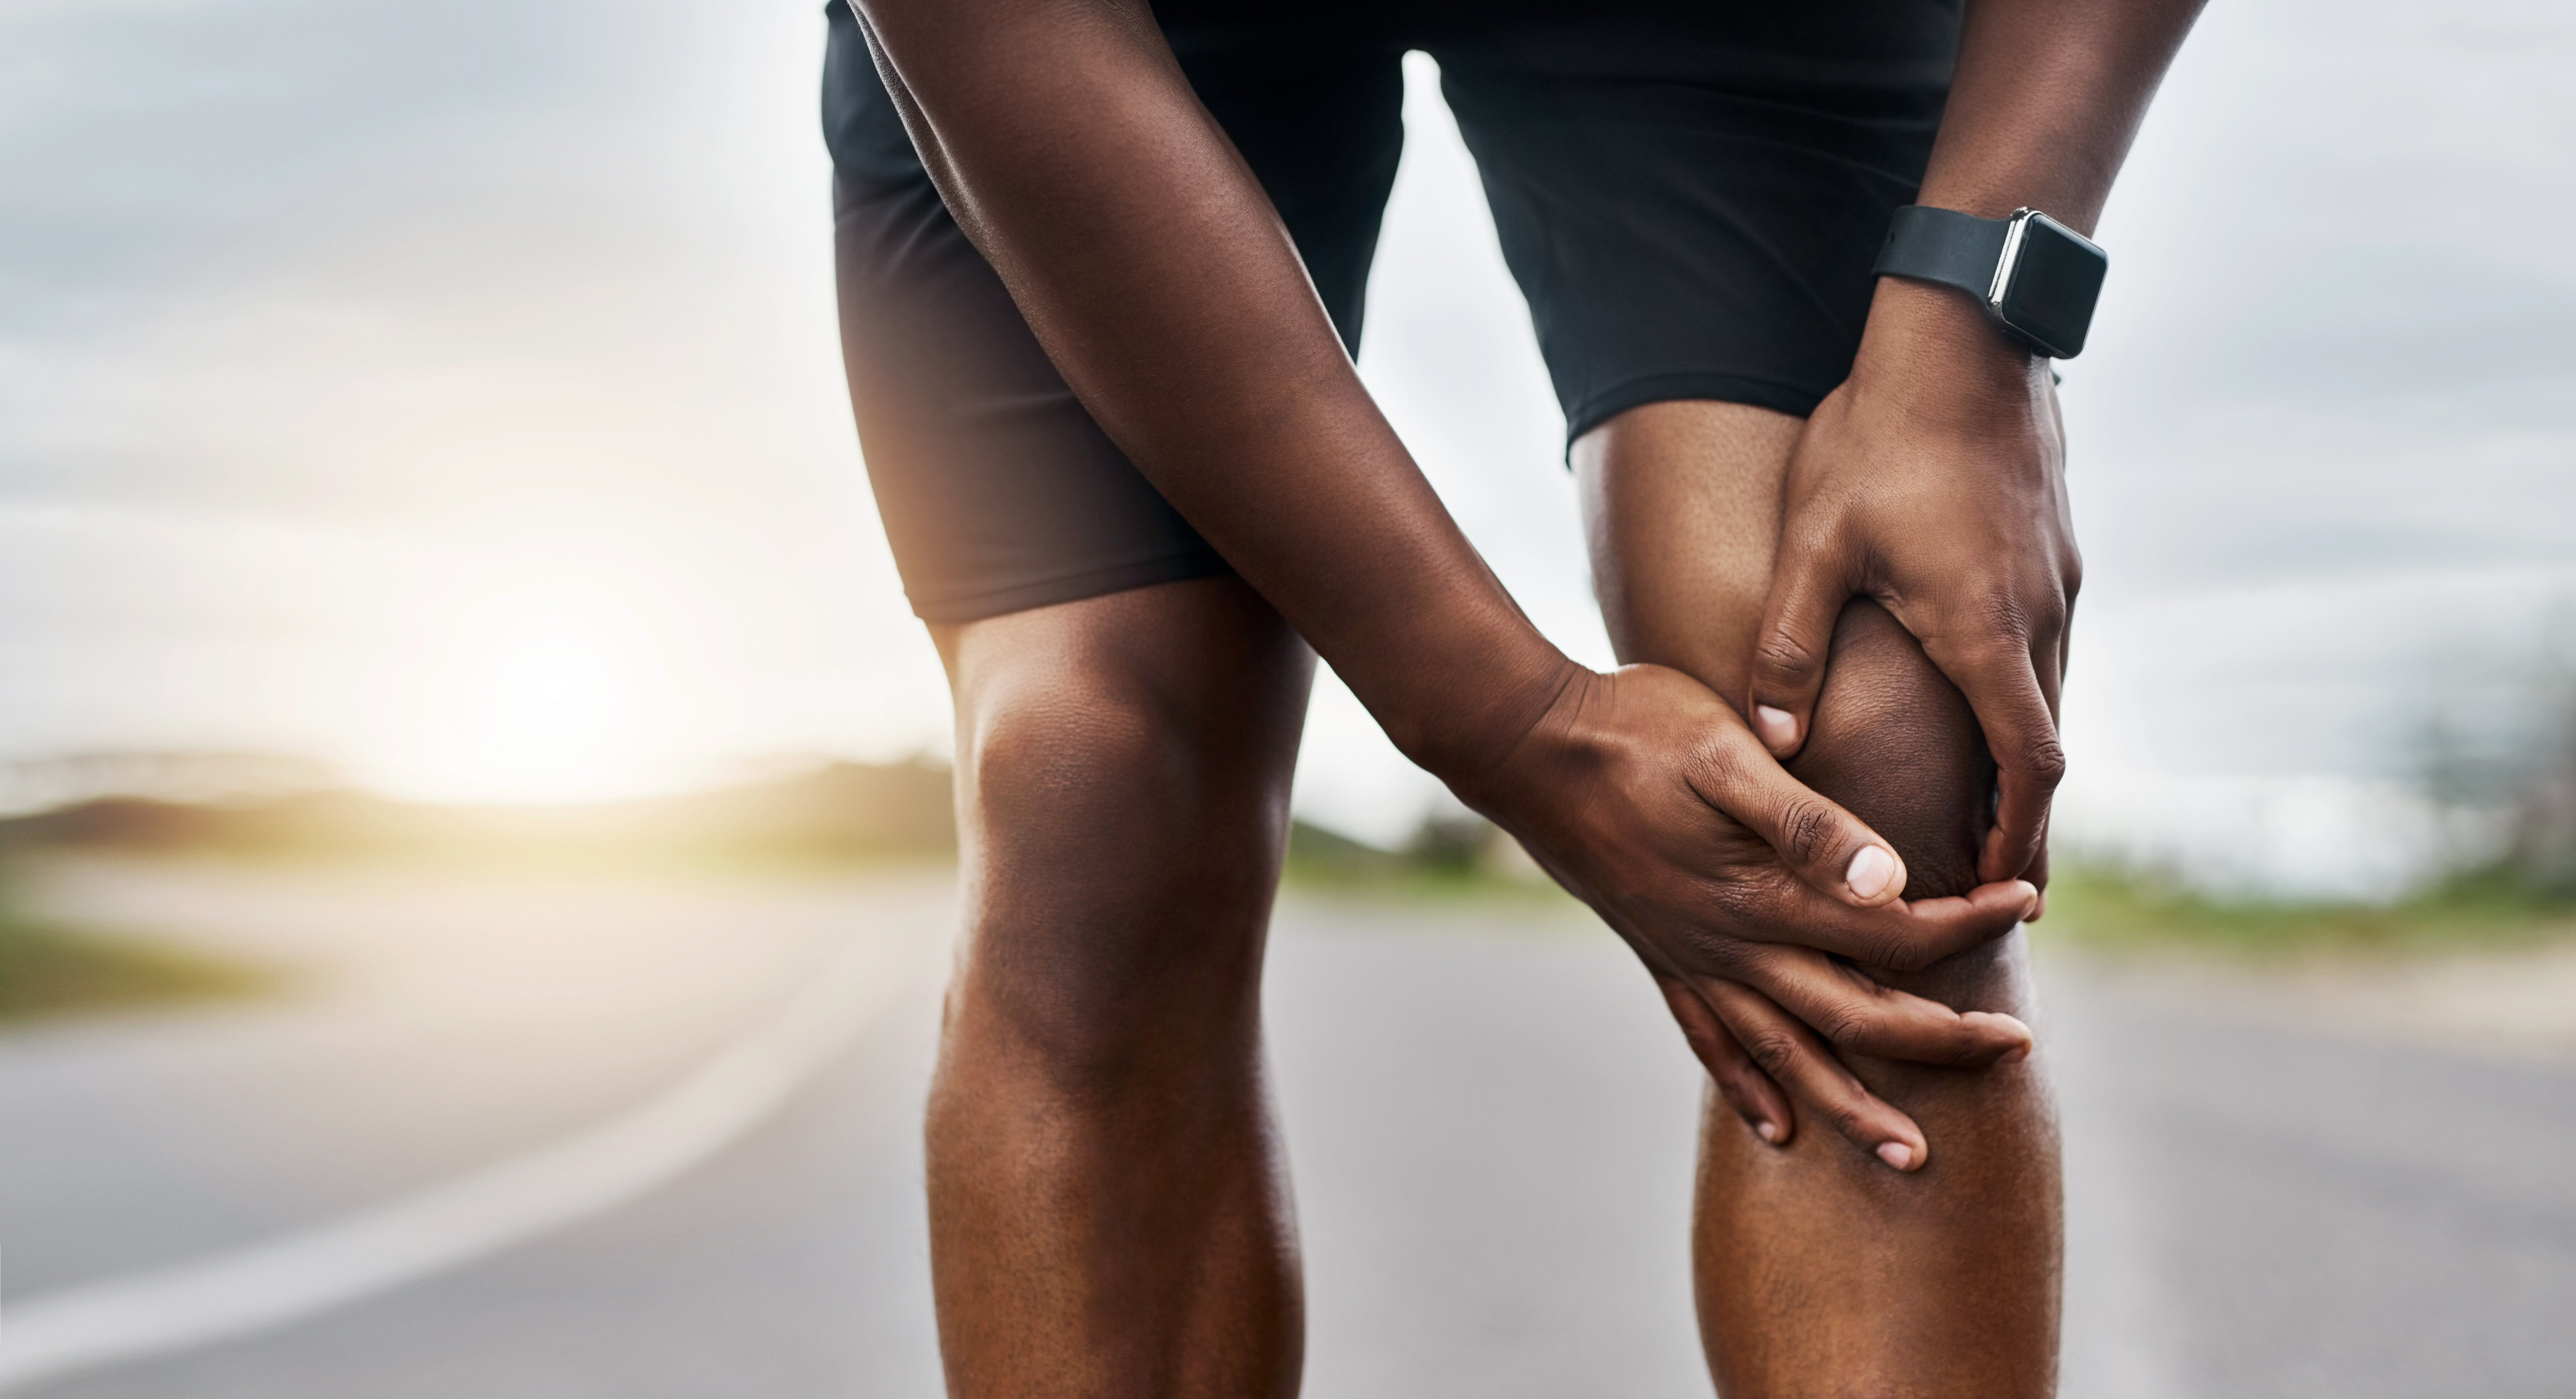 What To Do About Your Sore Muscles